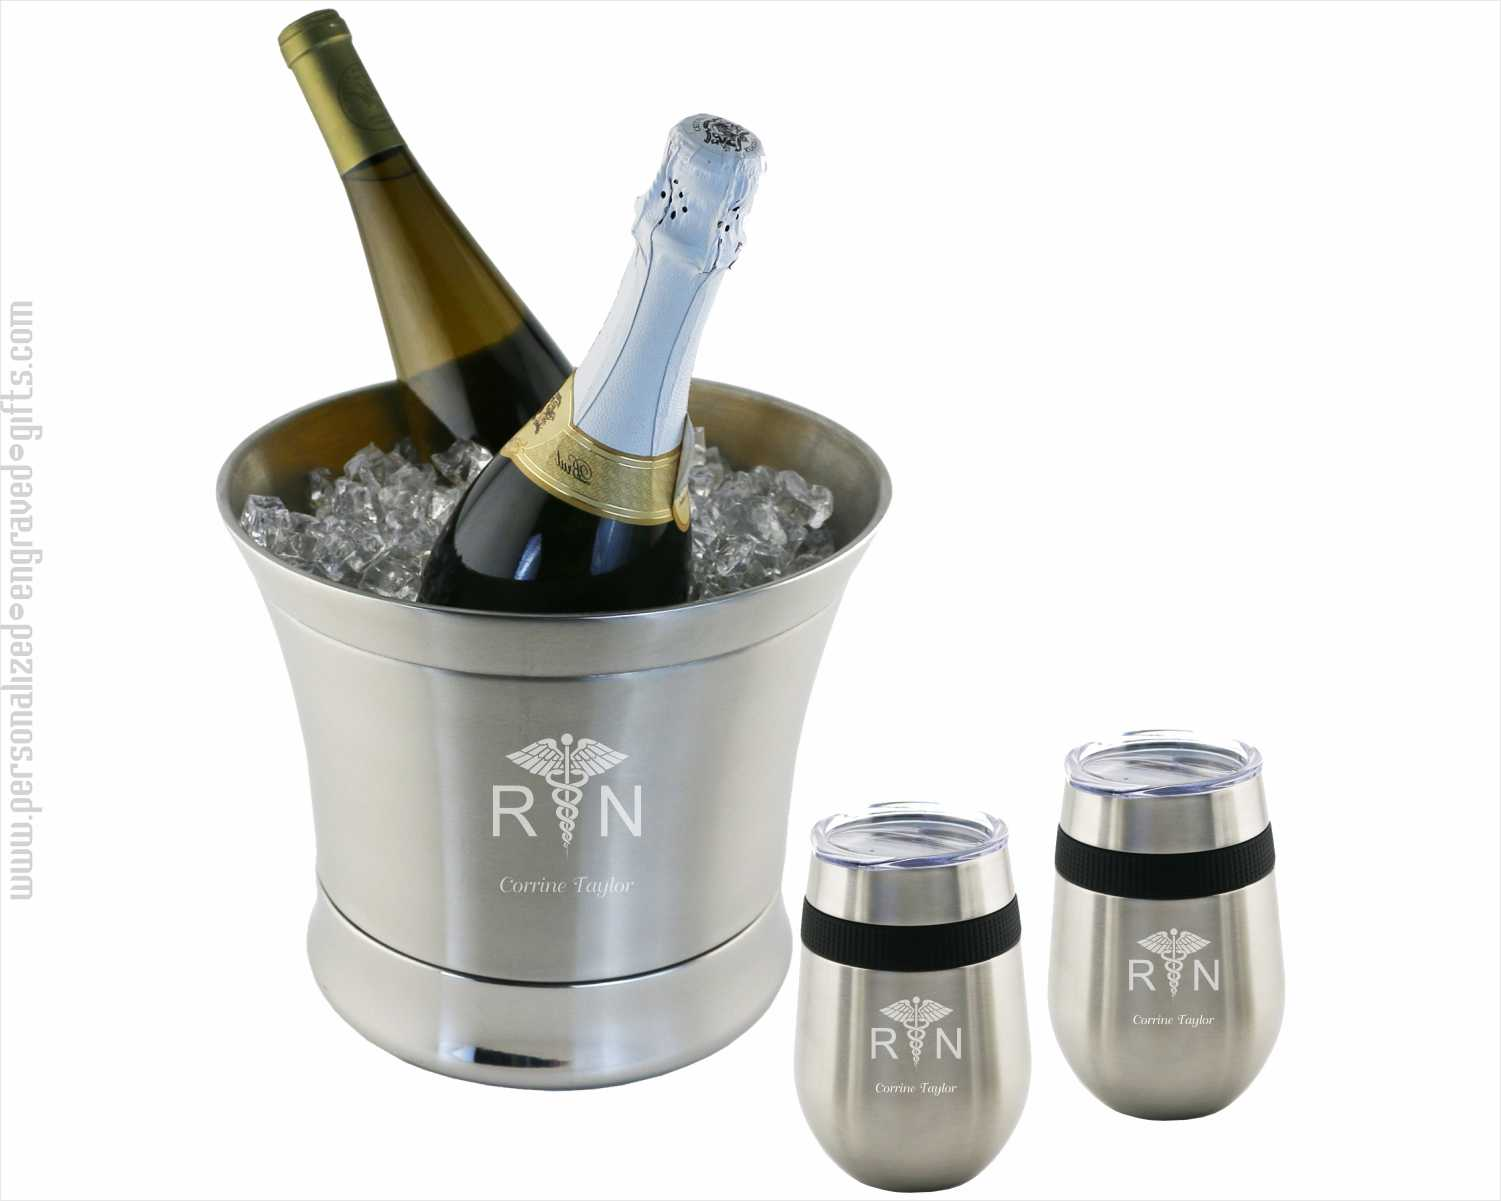 Engraved Stainless Steel Ice Bucket with 2 Stemless Wine Glasses